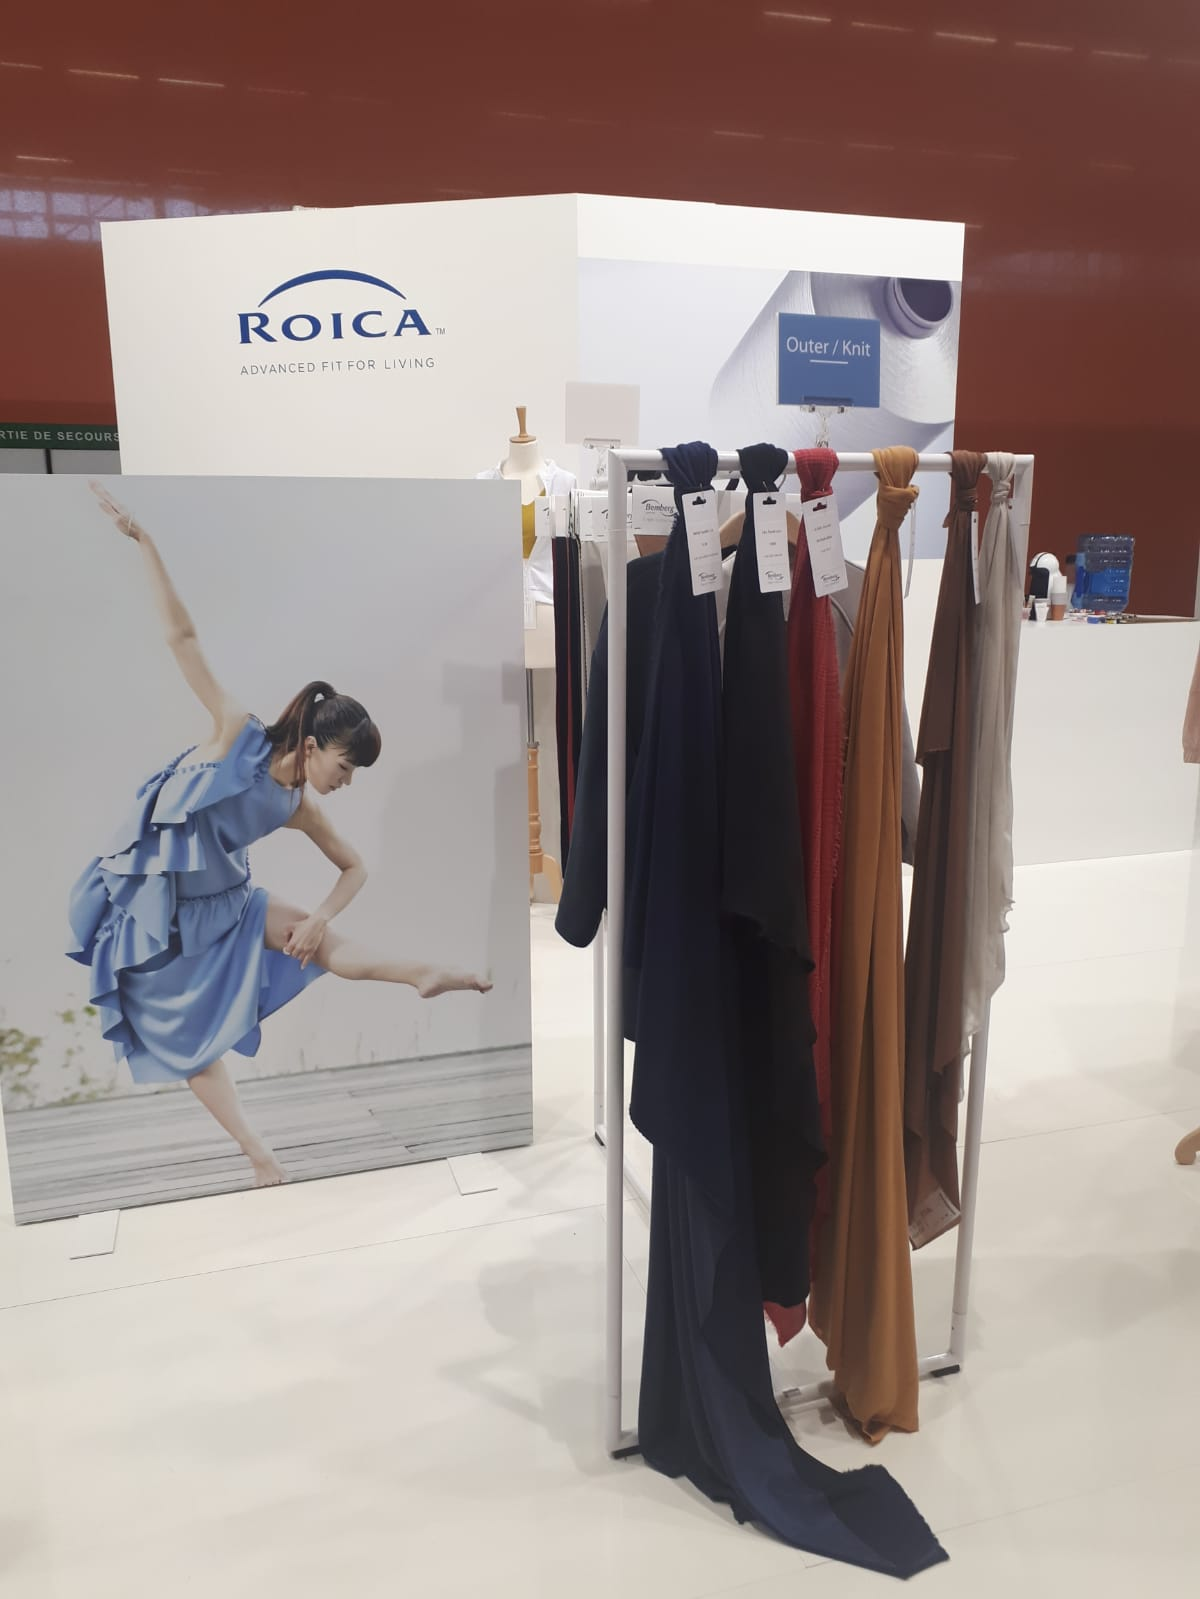 ROICA™ Joins Première Vision Paris February 12-14, 2019                                          Hall 6 booth 6H56 6J57